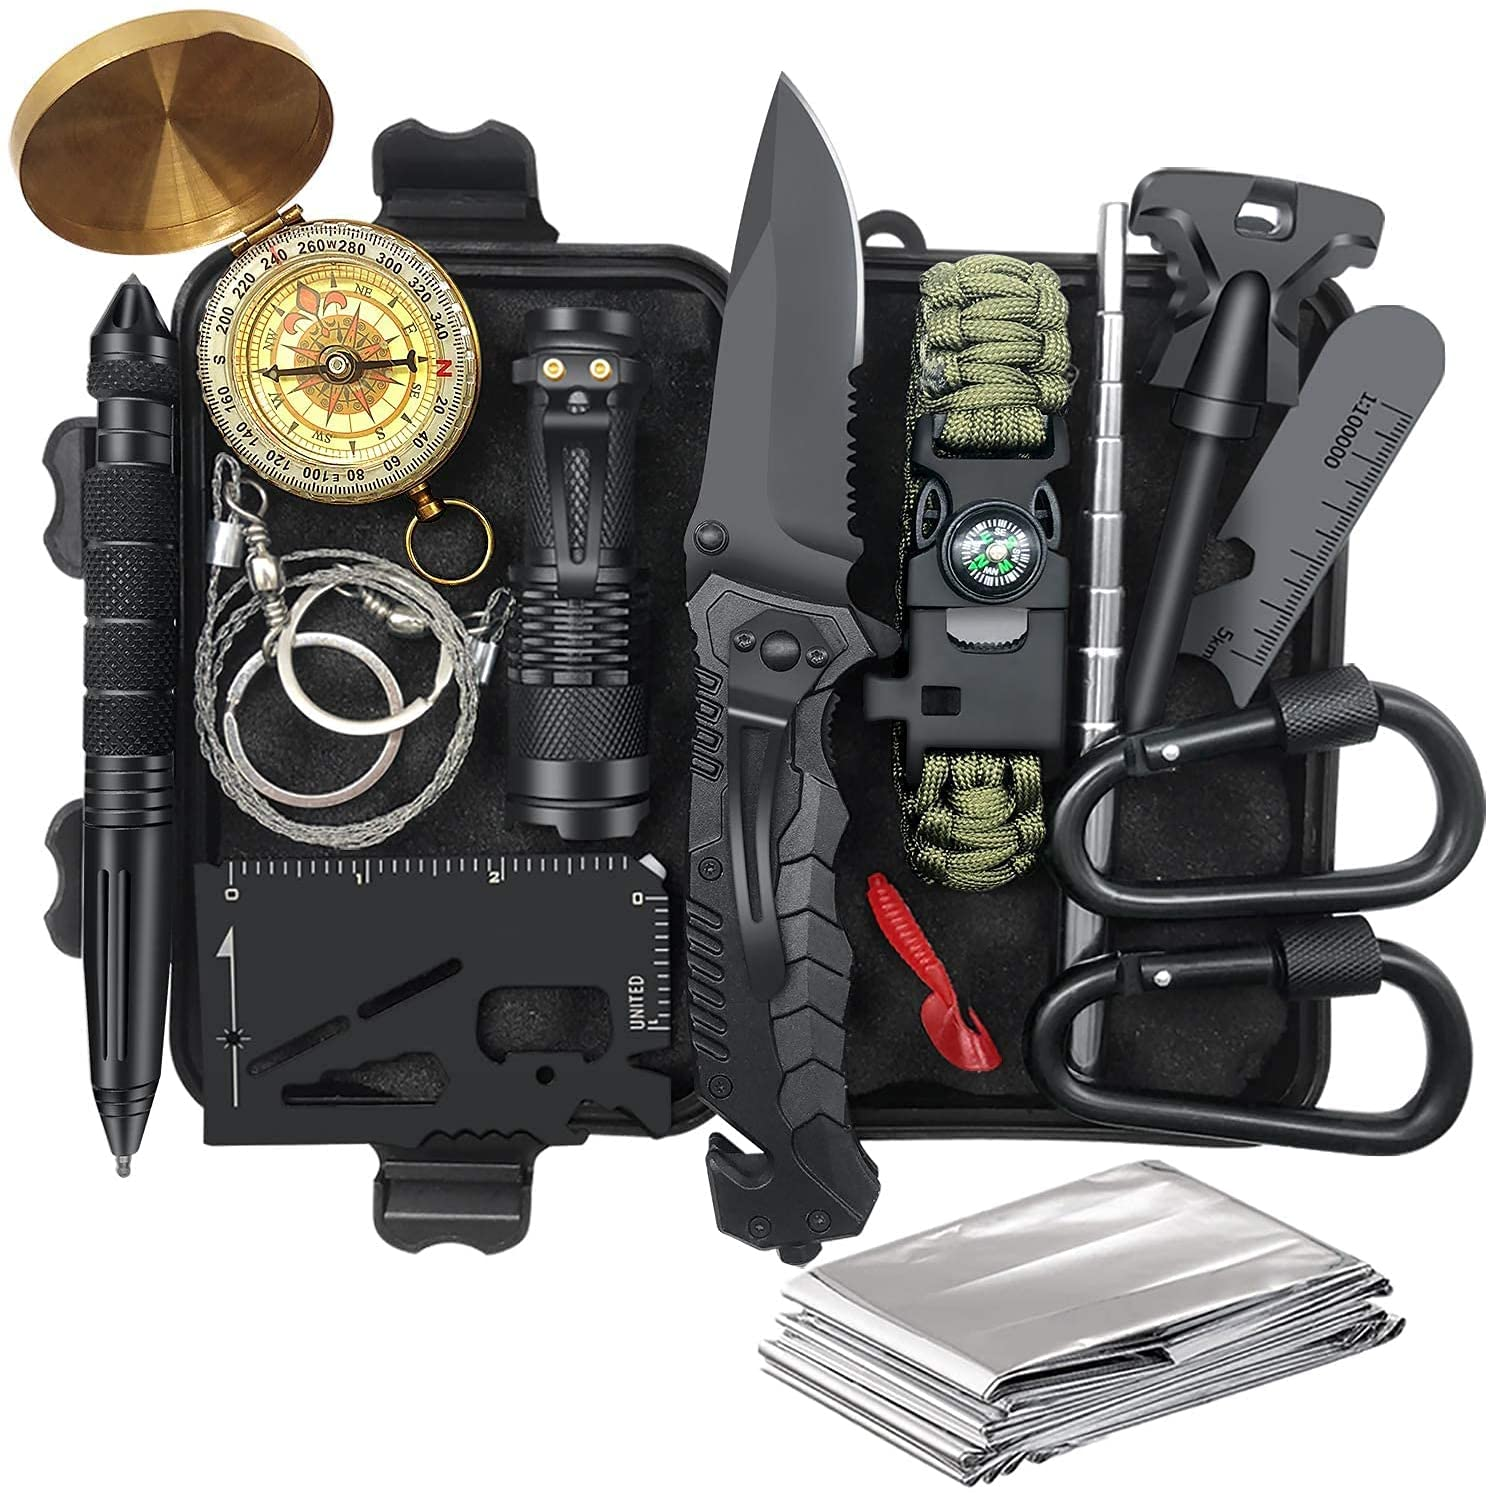 Gifts for Men Dad Husband Fathers Survival Gear